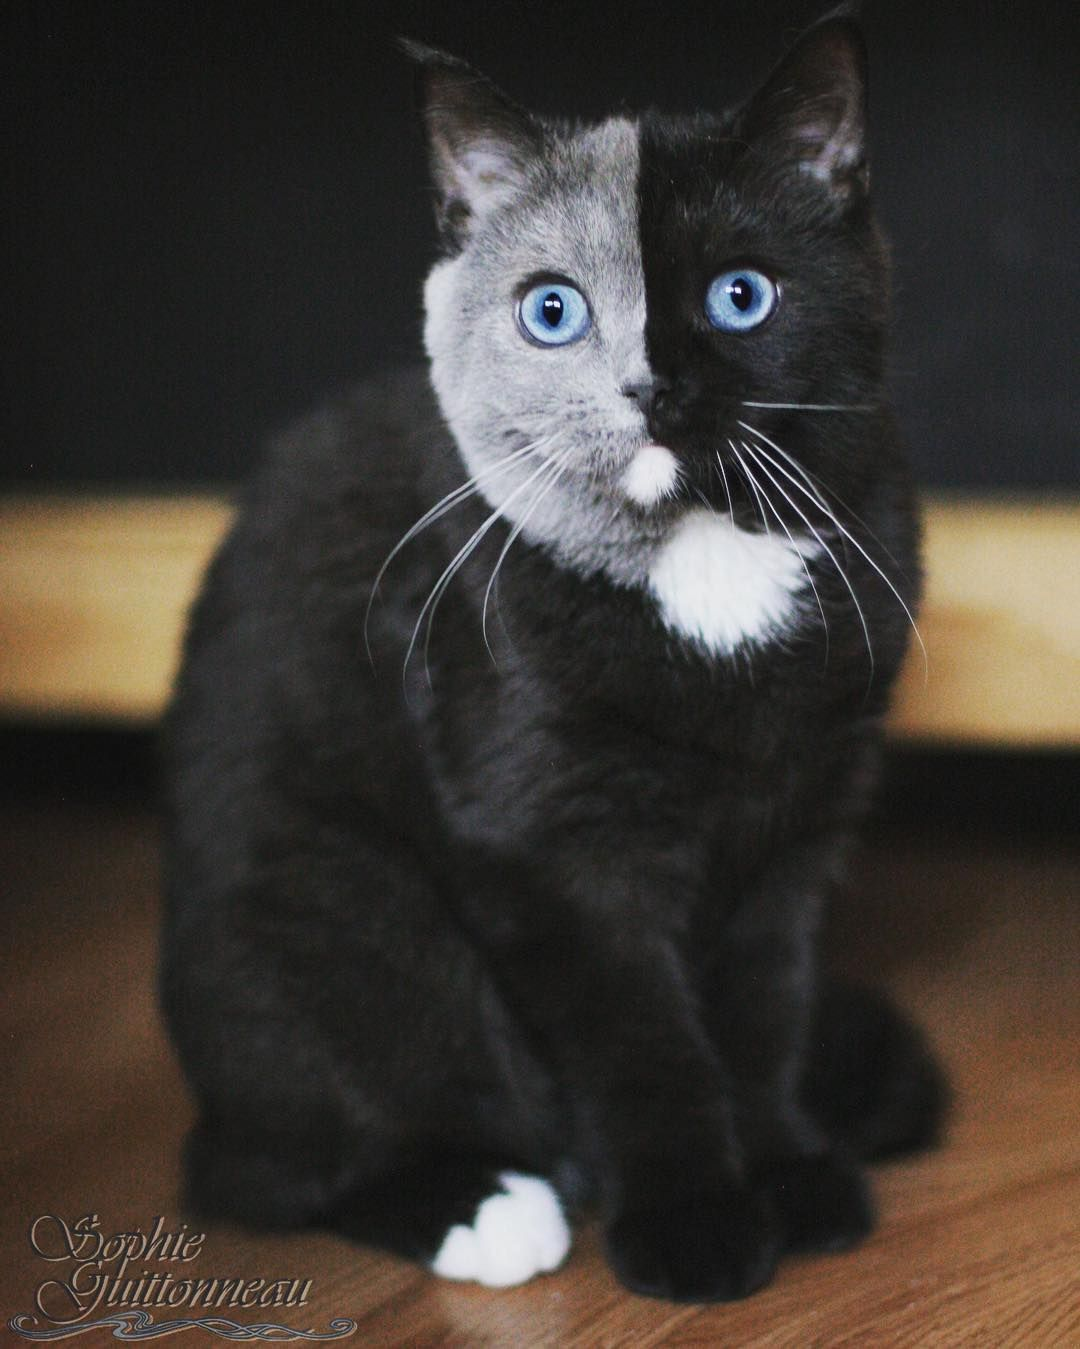 Adorable Kitten Born With A Rare Two Face Has Grown Into A Striking Cat Adorable Grown Kitten Striking In 2020 Beautiful Cats Cats Kittens Cutest